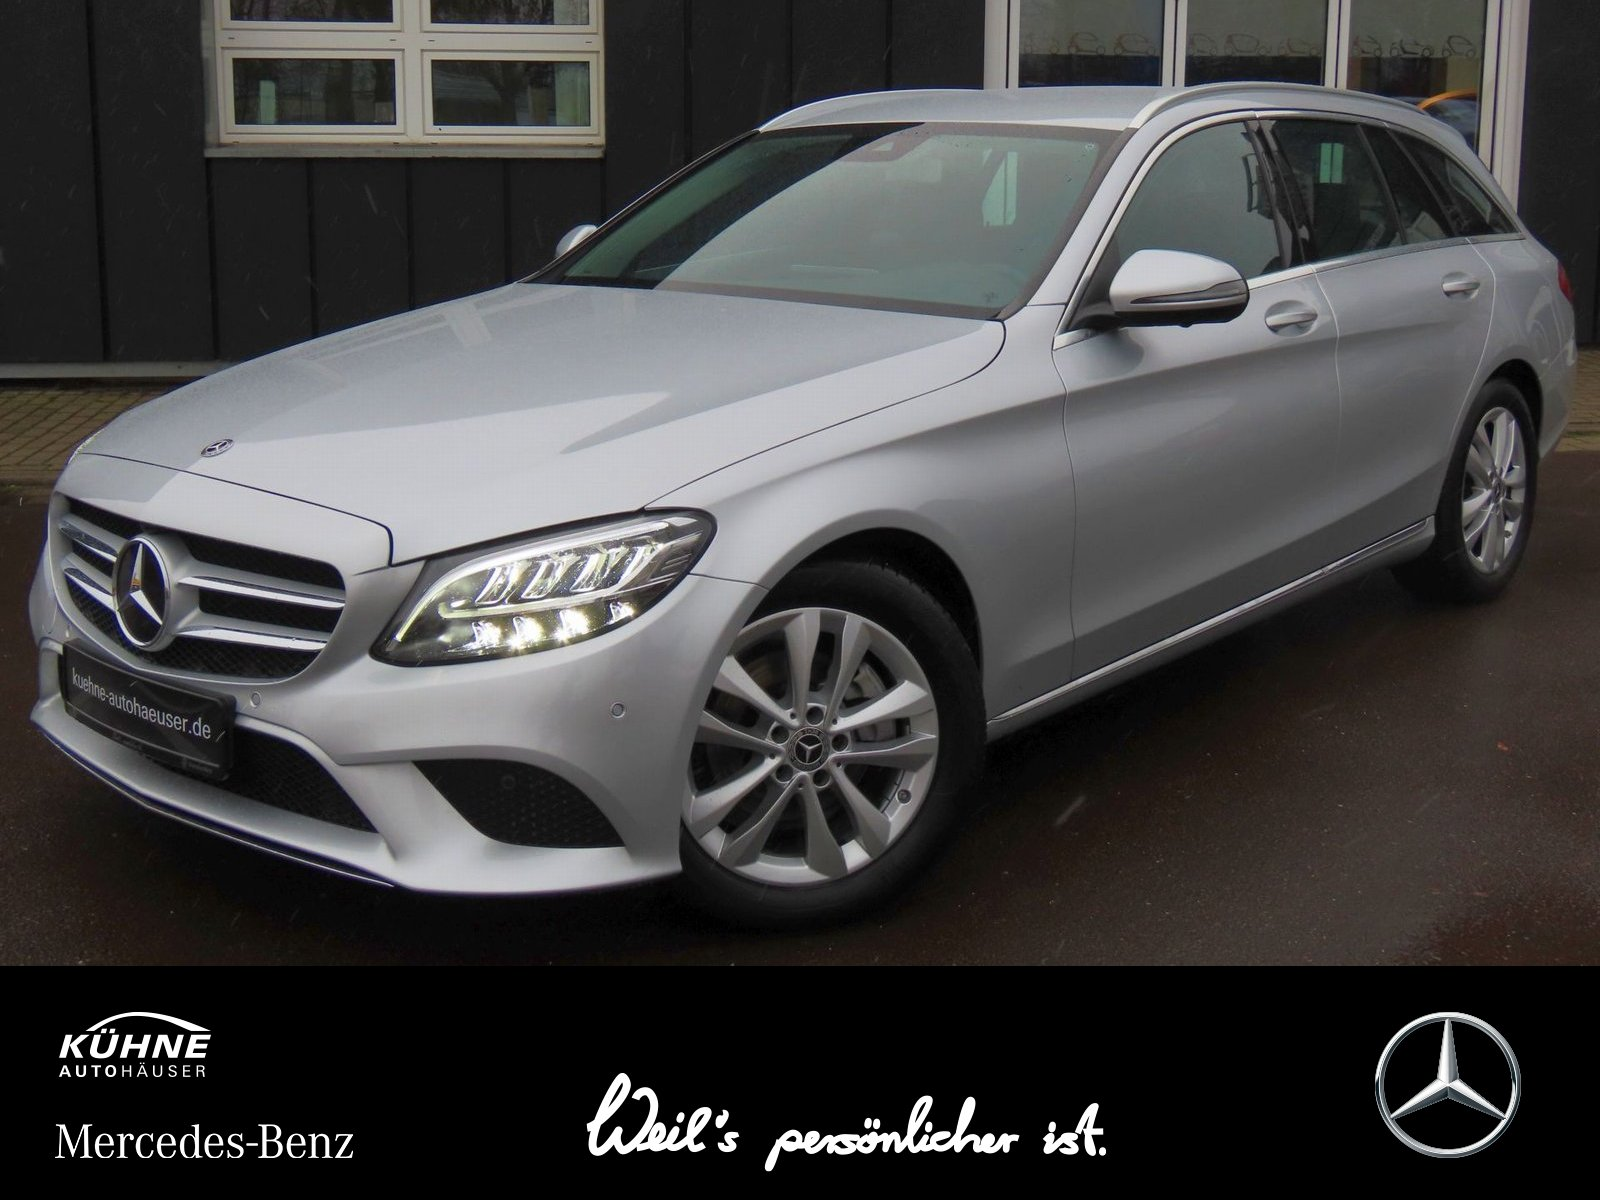 Mercedes-Benz C 220 d T Avantgarde 9G+Busines Plus+HighEnd+360, Jahr 2019, Diesel